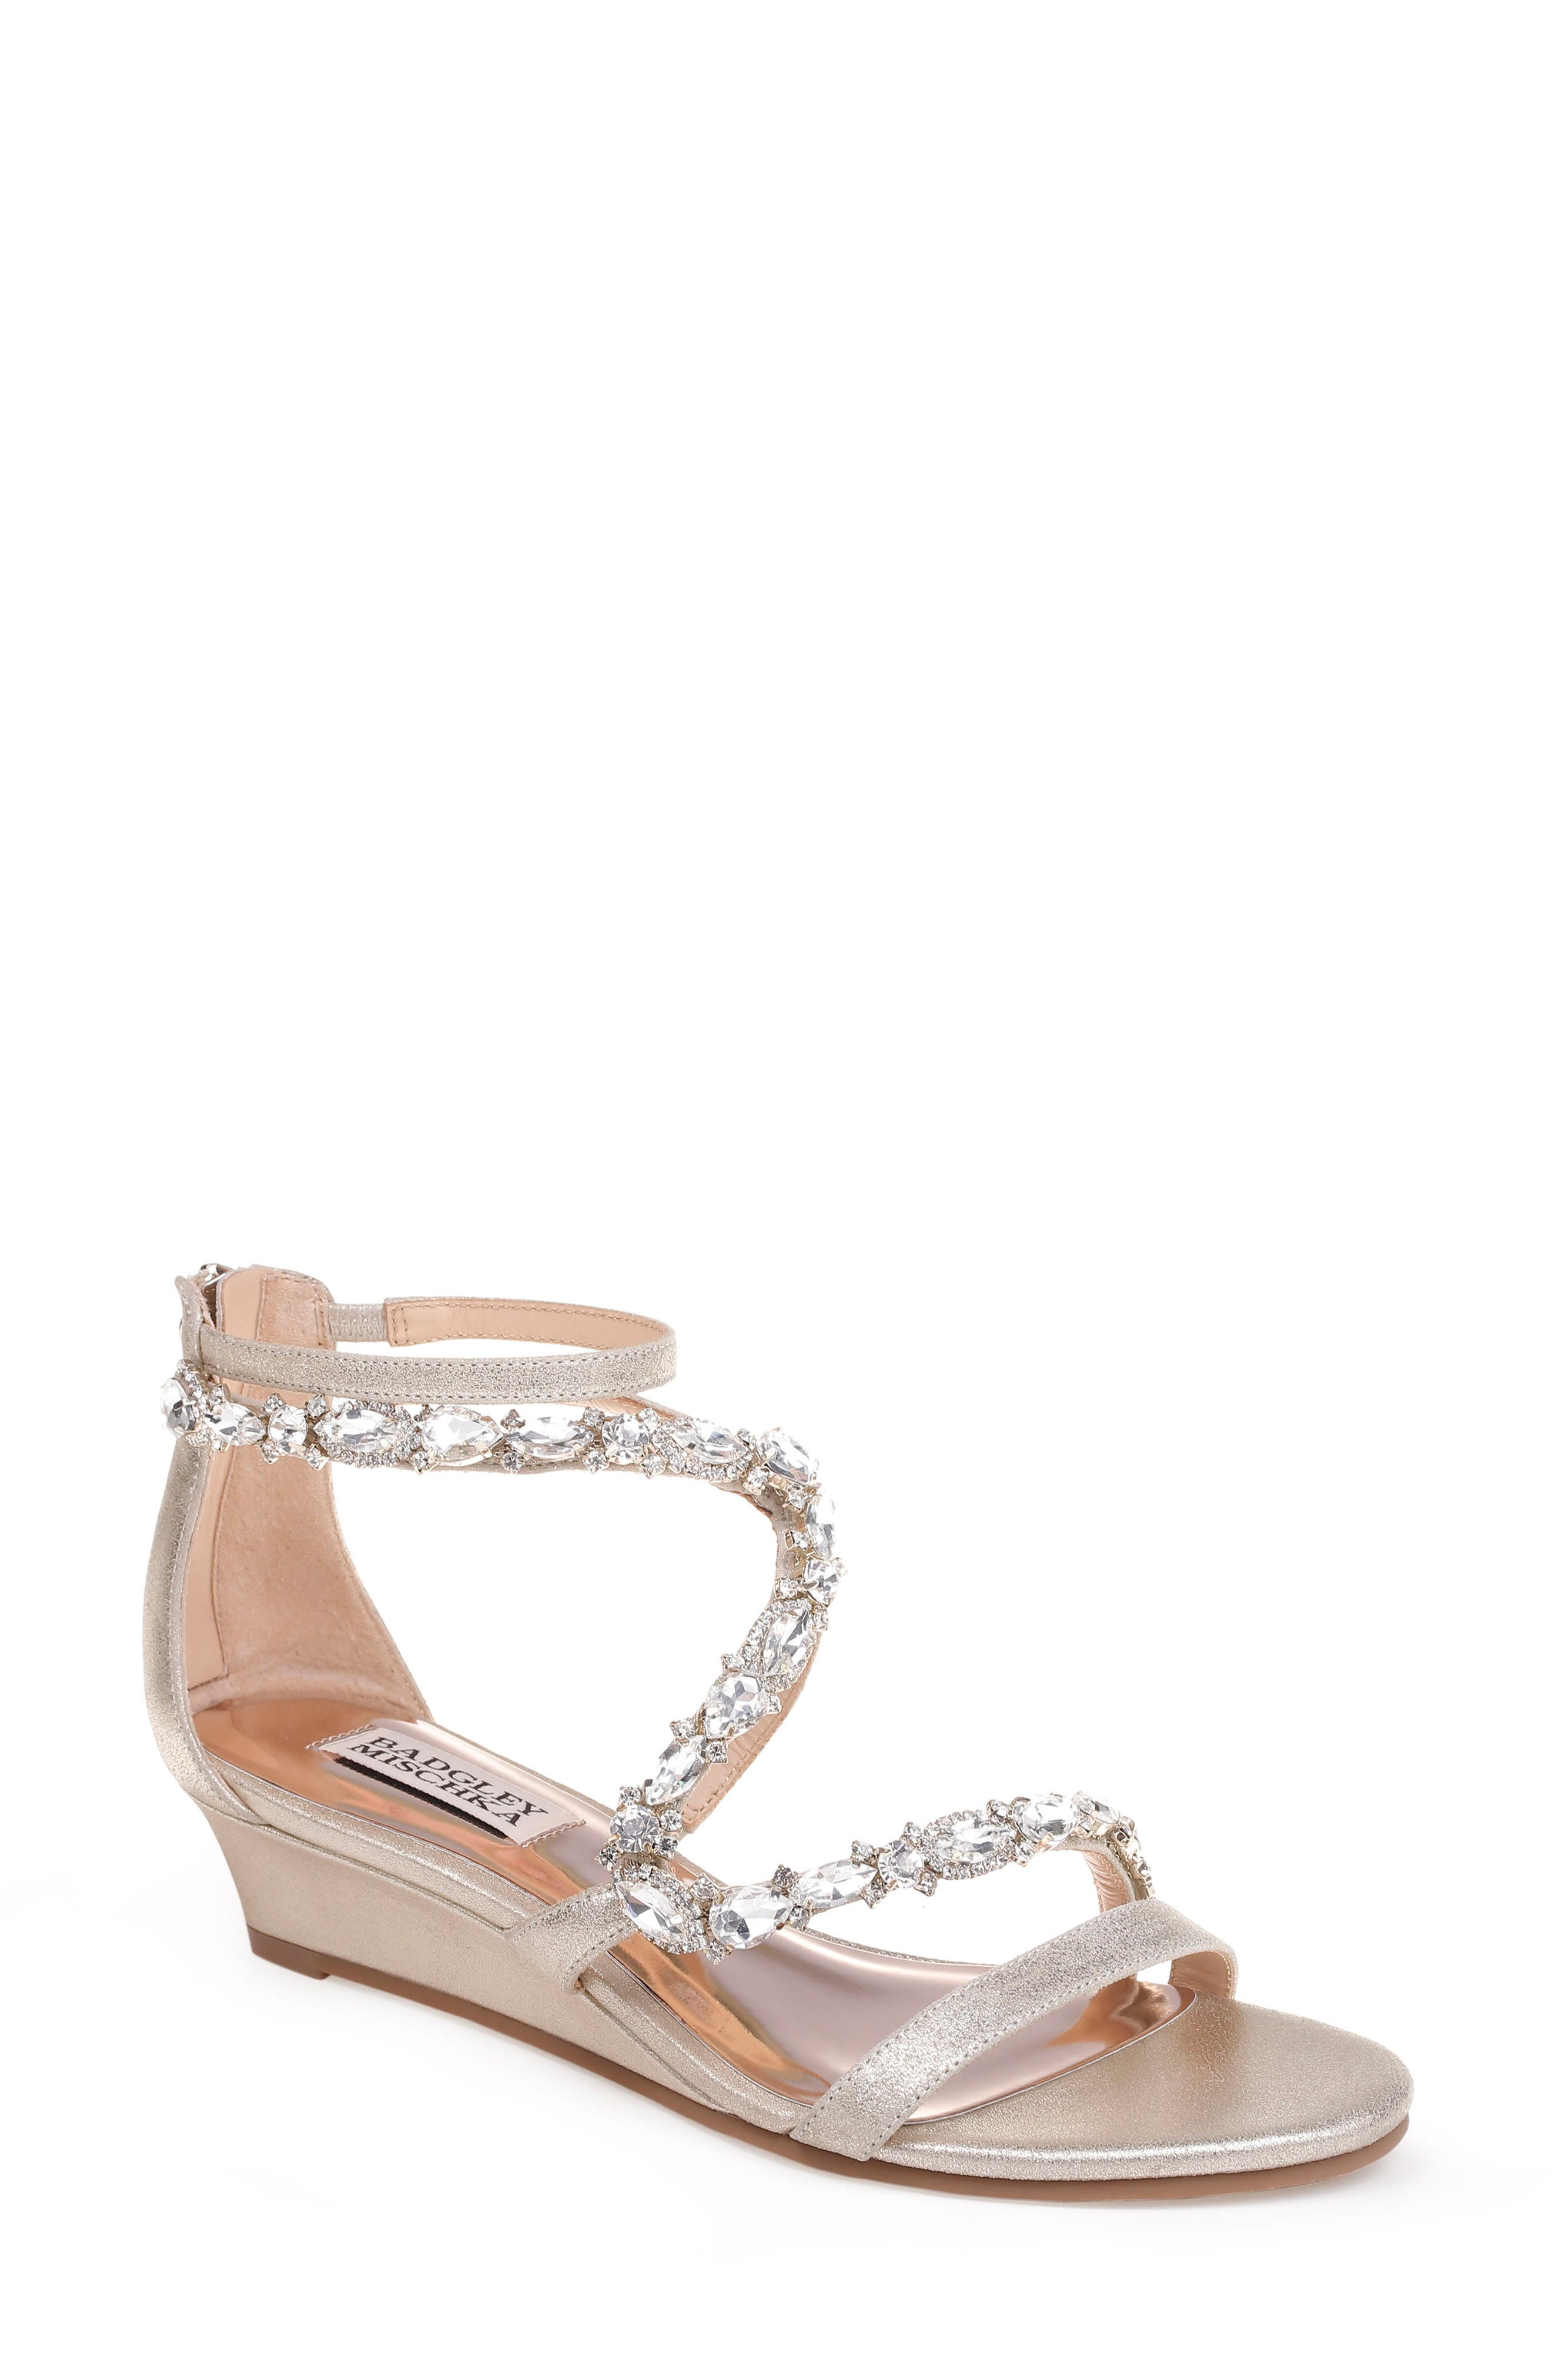 Sierra Strappy Wedge Sandal,                         Main,                         color, Platino Suede